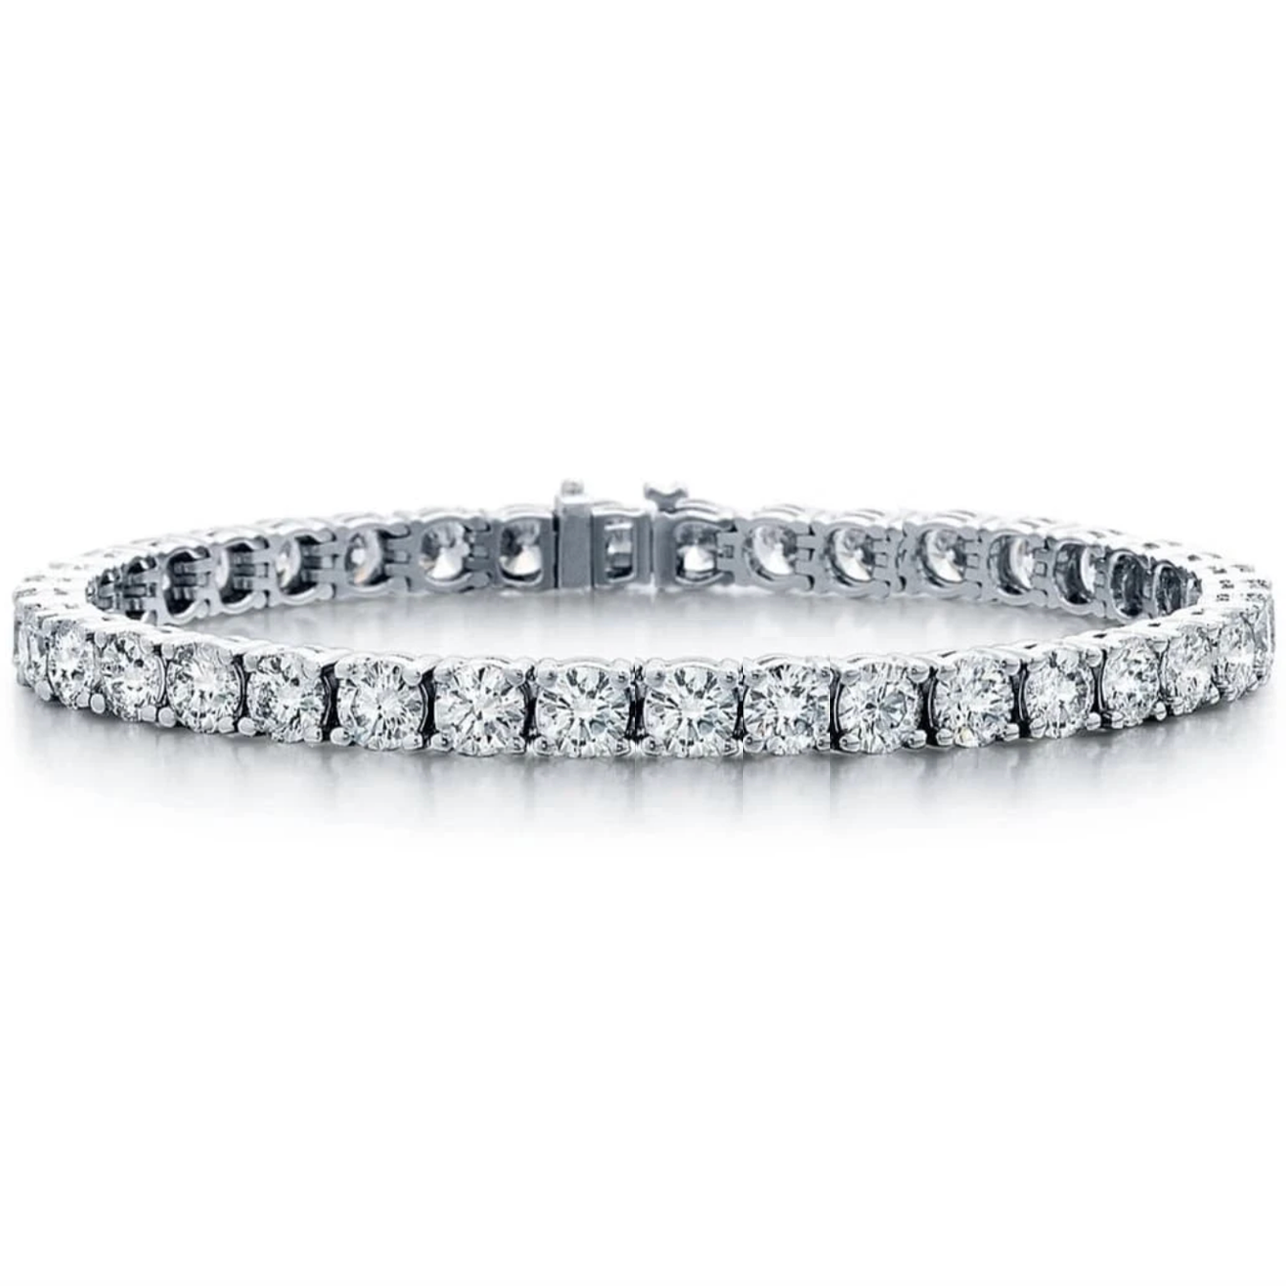 Classic Large Prong Set 6.36ctw Diamond Tennis Bracelet